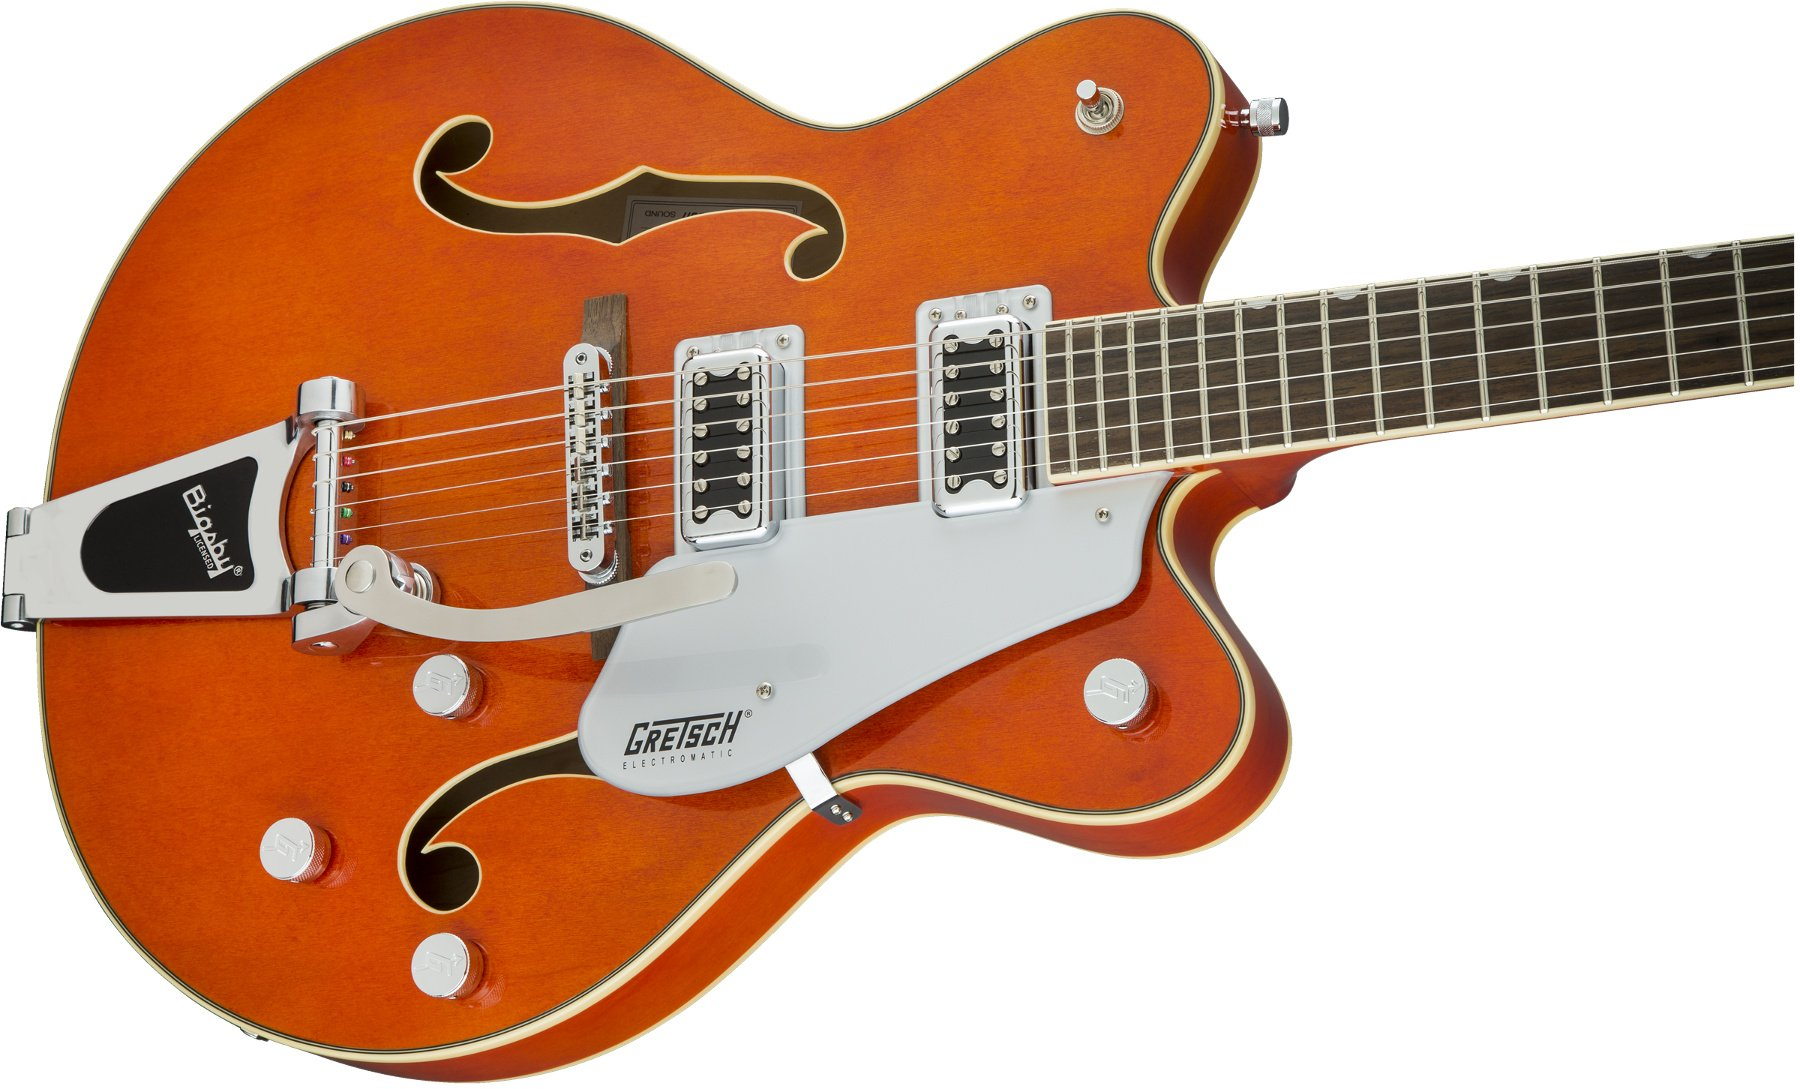 Hollow Body Double-Cut with Bigsby, Orange Stain Finish